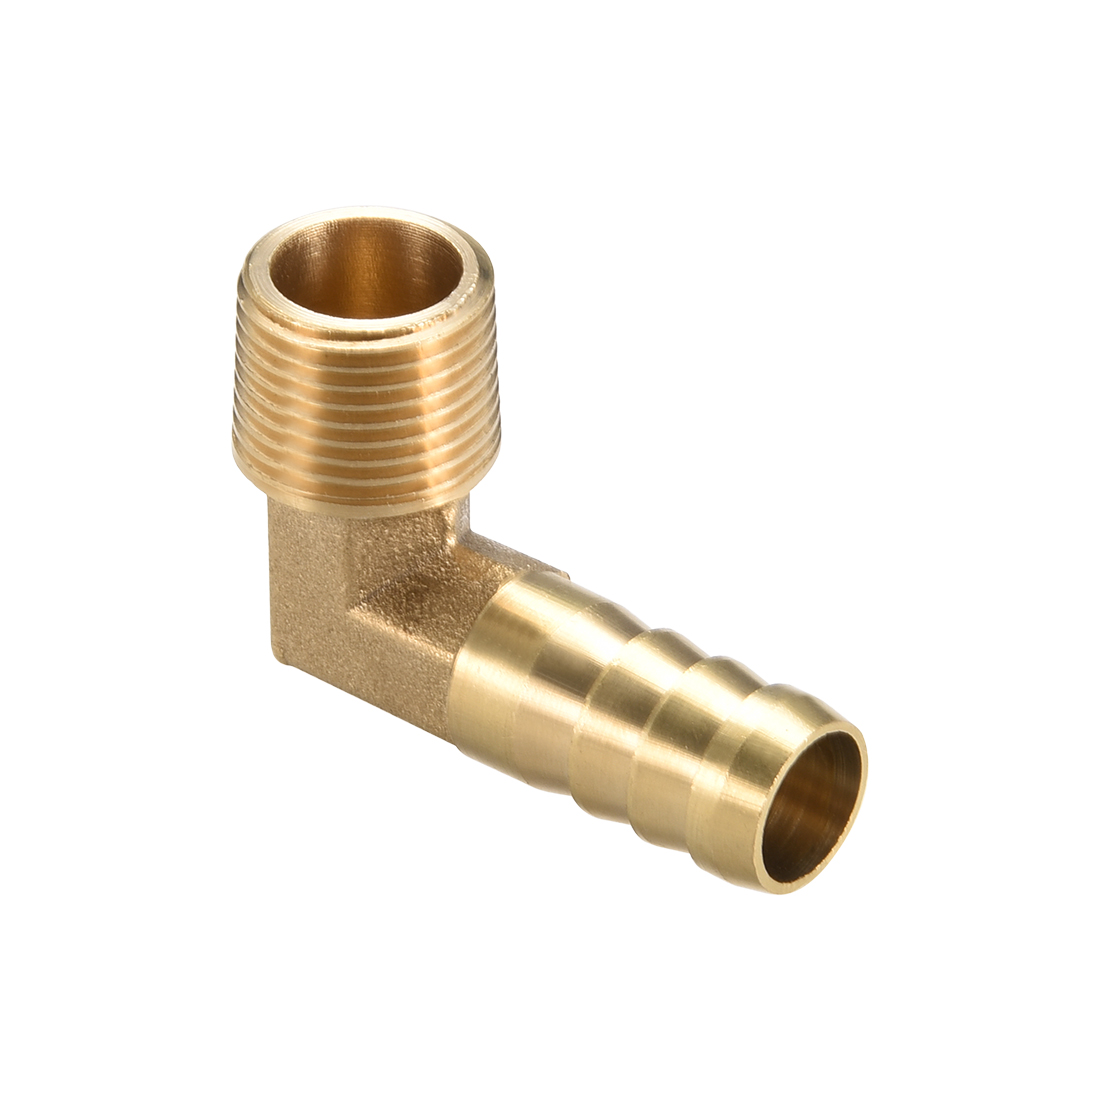 "Brass Barb Hose Fitting 90 Degree Elbow 12mm Barbed x 3/8"" G Male Pipe"